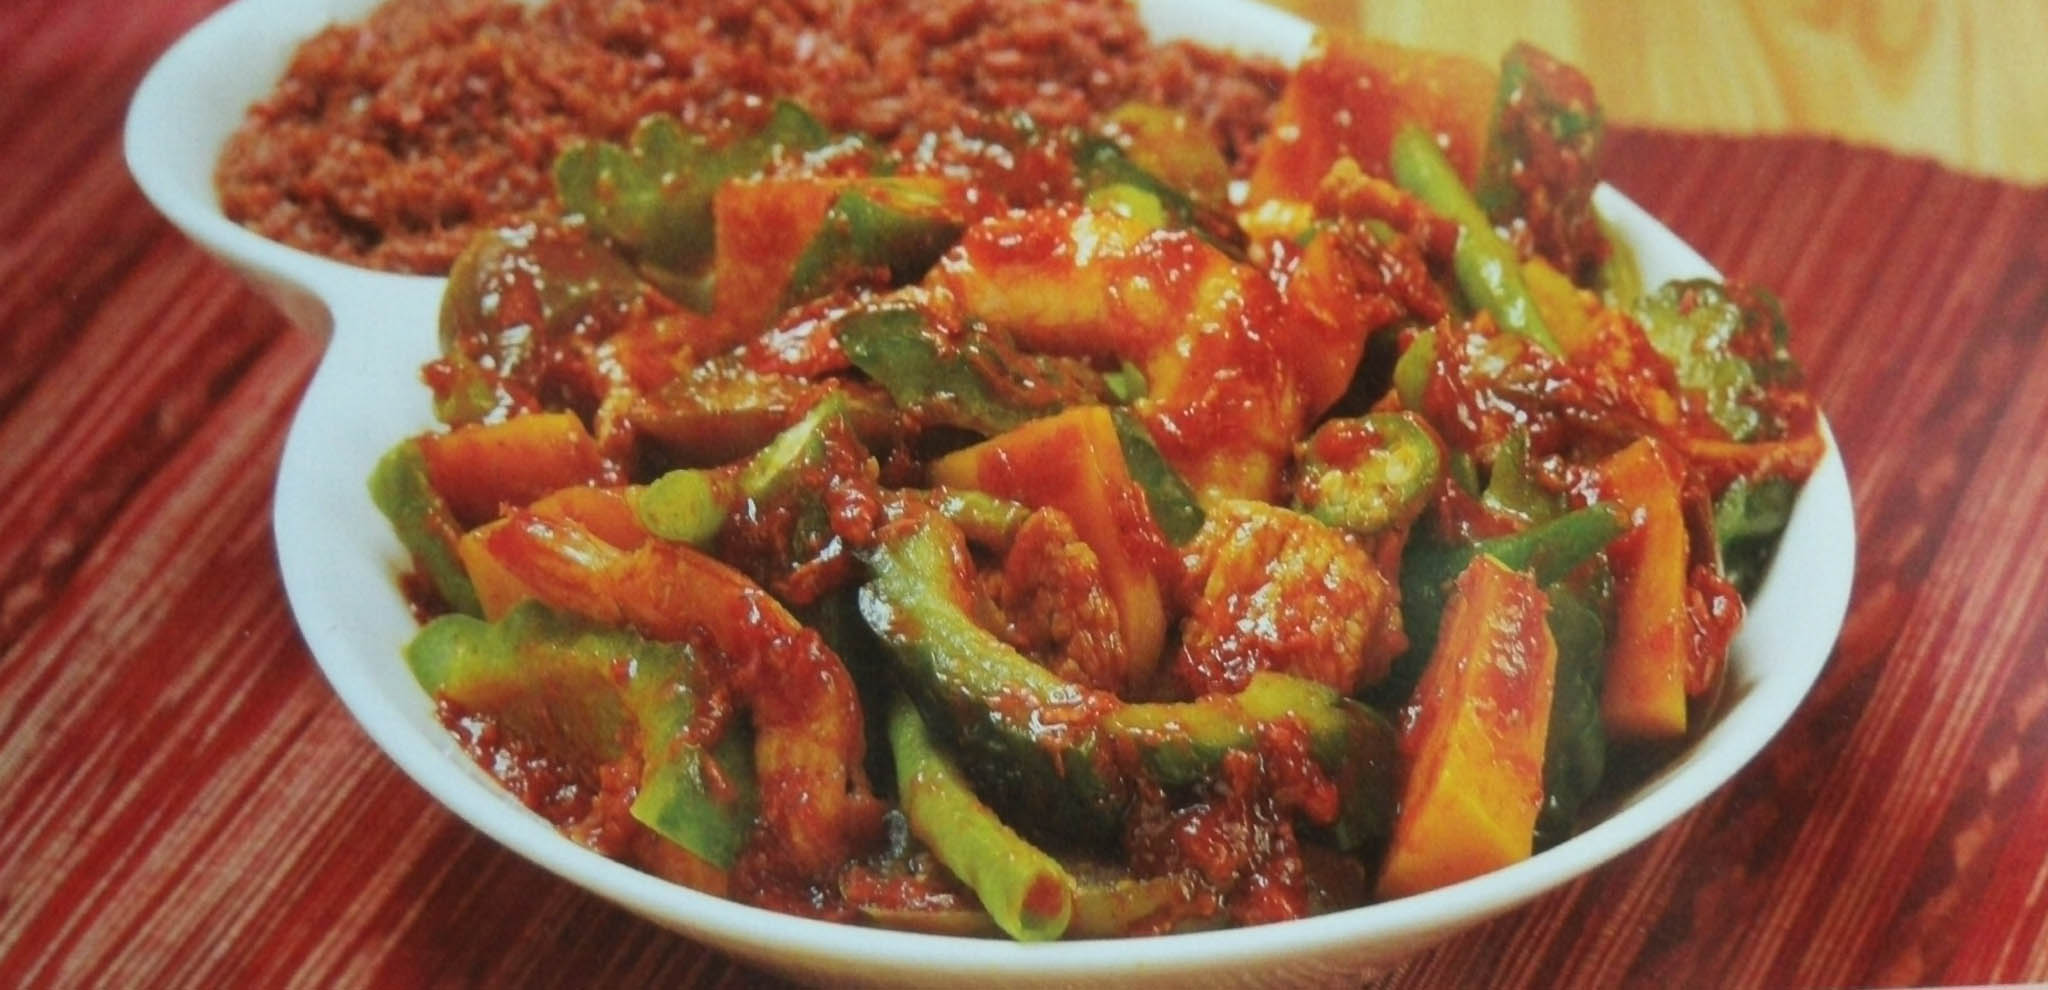 Pakbit Manyaman ( Mixed Veggies in Annatto & Beer Sauce)